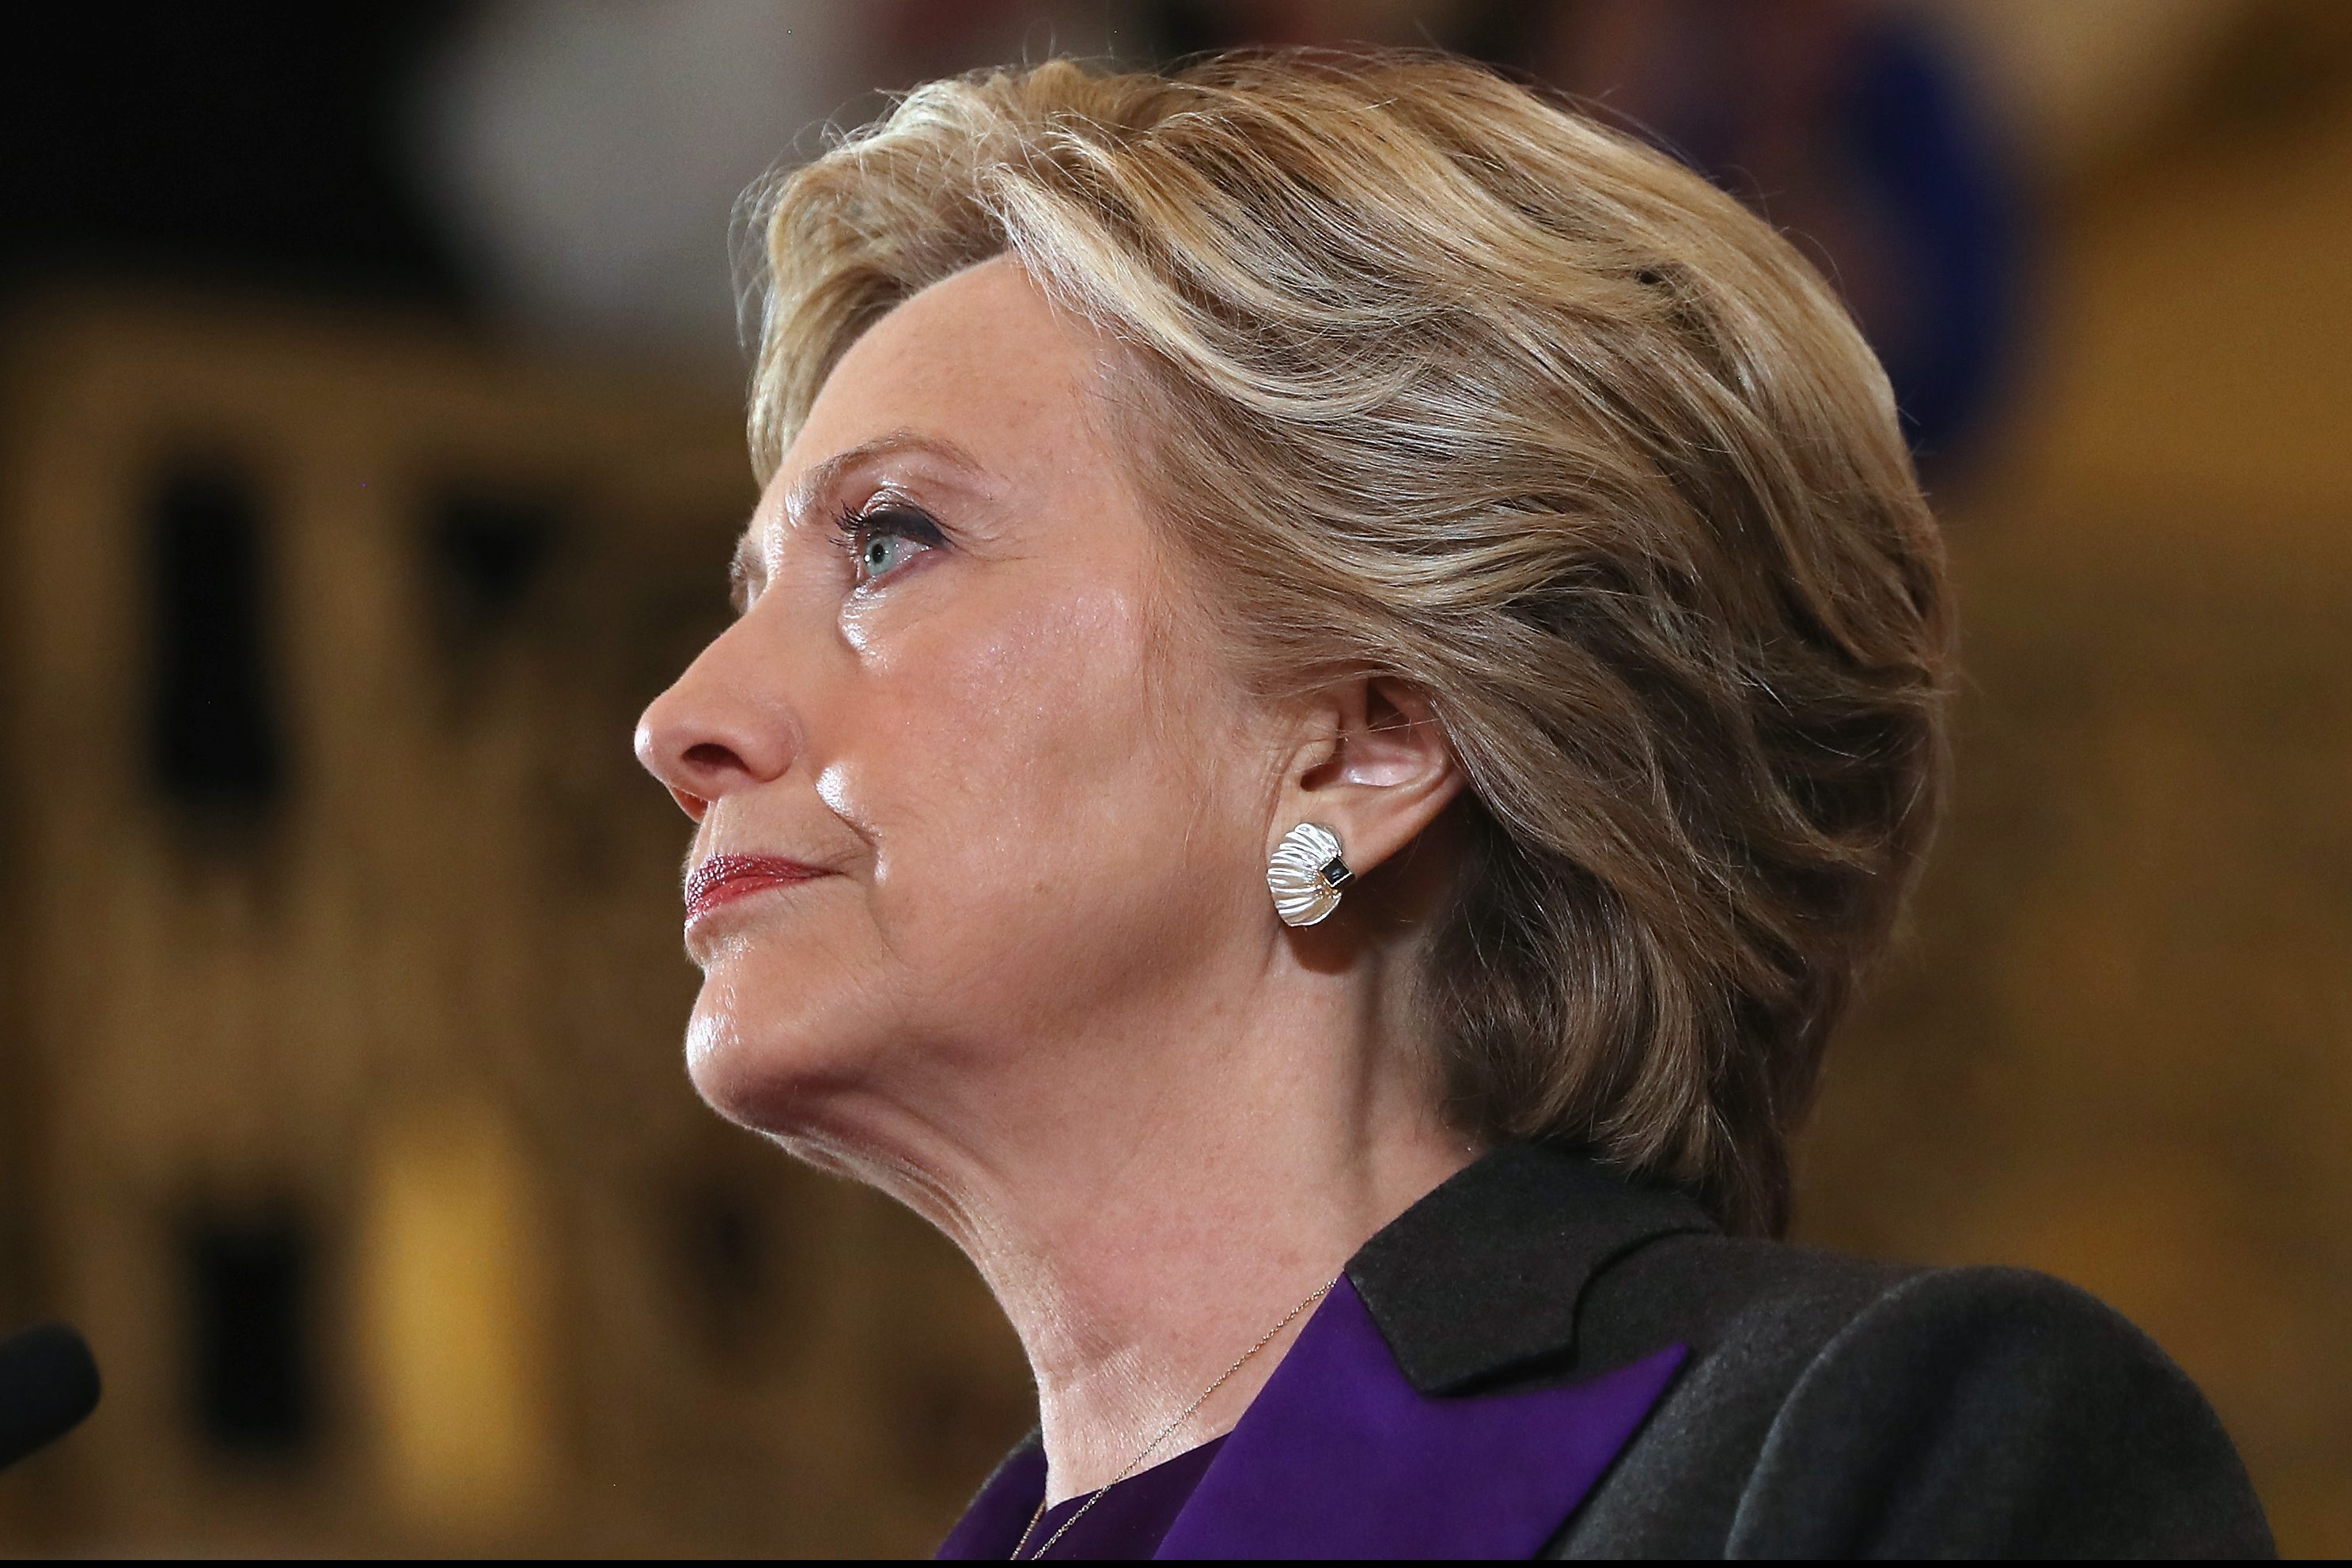 NEW YORK, NY - NOVEMBER 09:  Former Secretary of State Hillary Clinton concedes the presidential election at the New Yorker Hotel on November 9, 2016 in New York City. Republican candidate Donald Trump won the 2016 presidential election in the early hours of the morning in a widely unforeseen upset.  (Photo by Justin Sullivan/Getty Images)